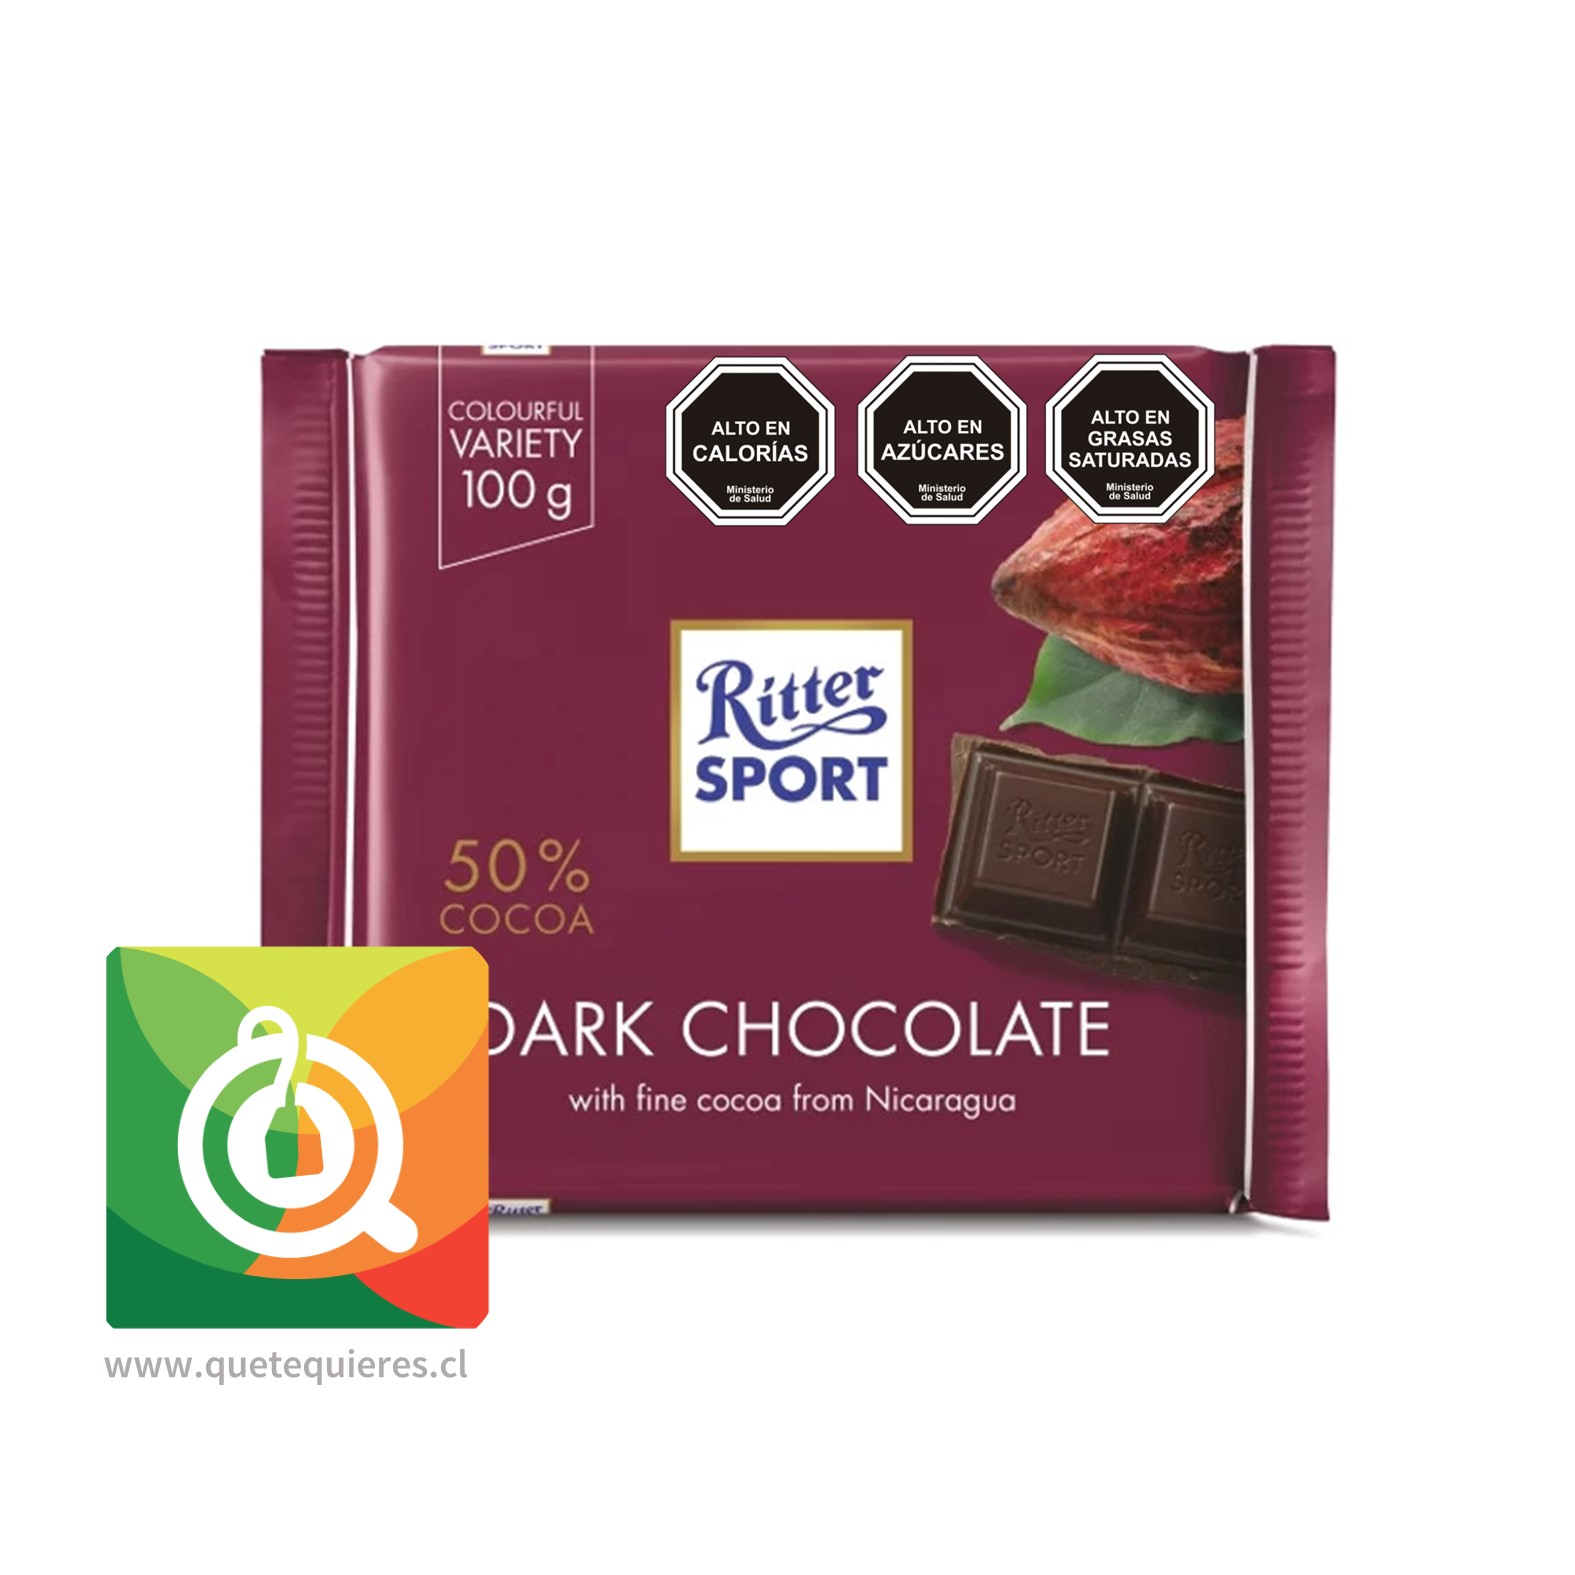 Ritter Sport Chocolate Semi amargo 50% cacao